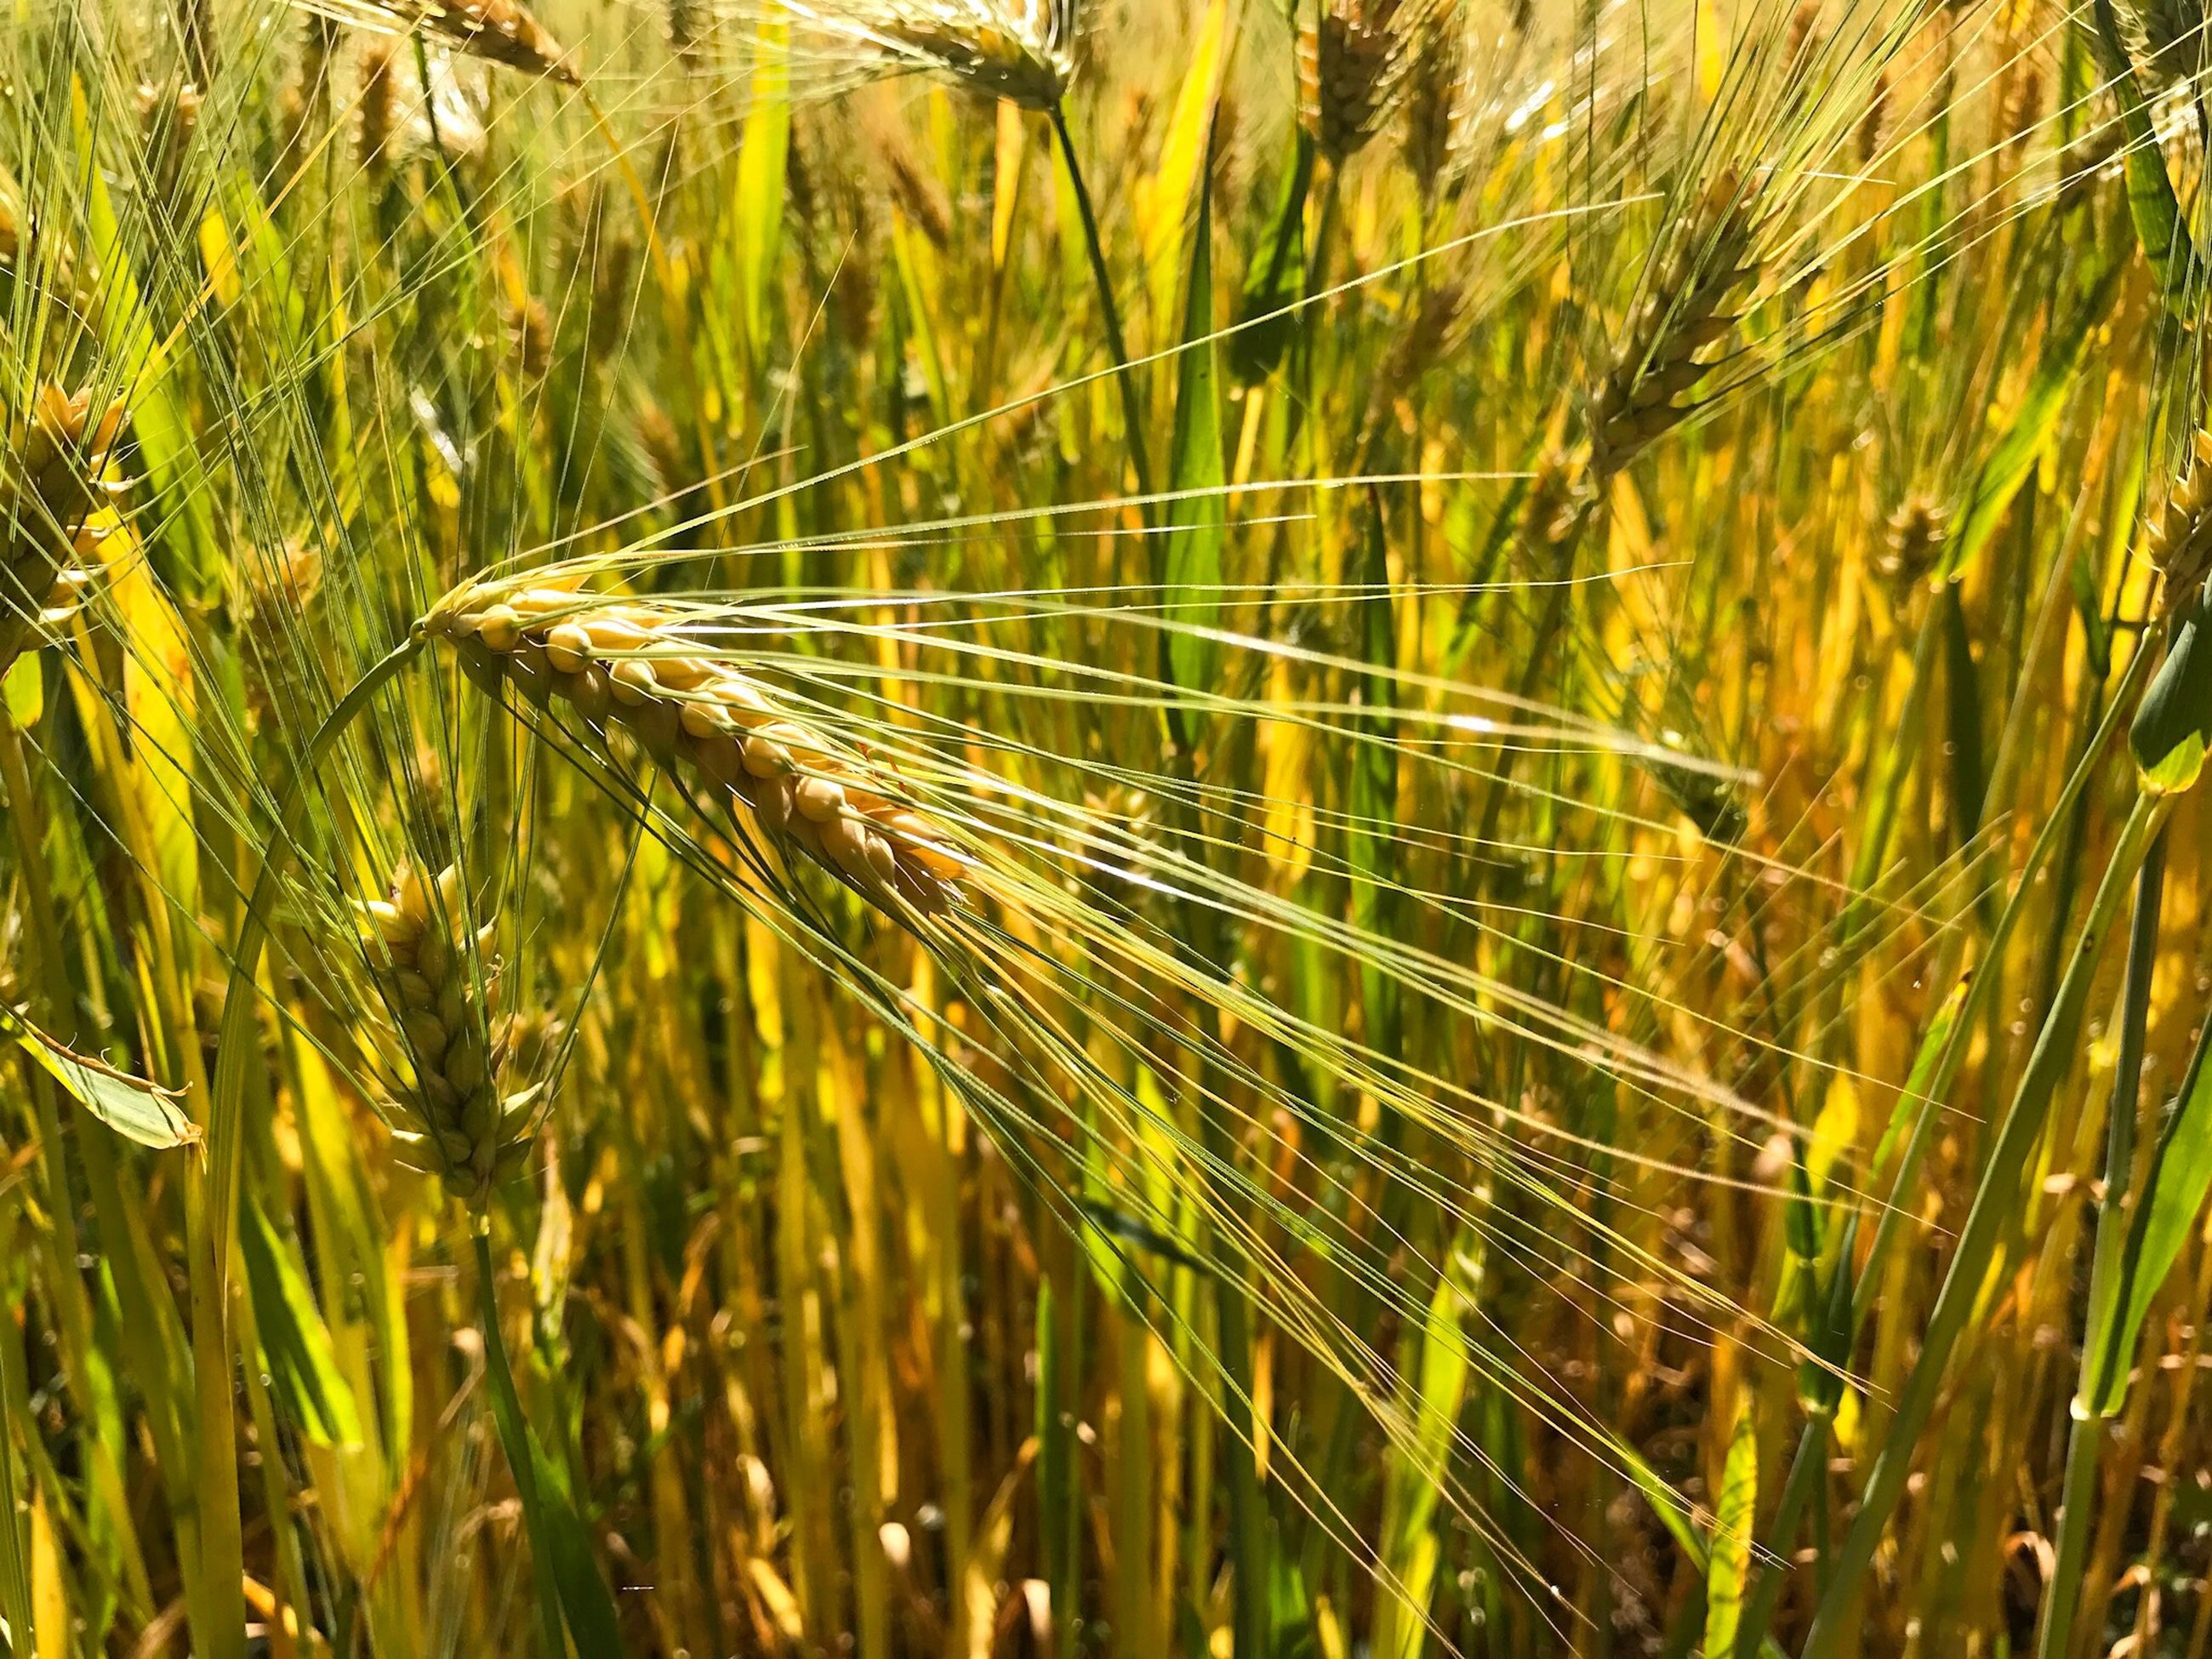 growth, cereal plant, nature, agriculture, crop, field, wheat, plant, grass, ear of wheat, farm, green color, outdoors, rural scene, beauty in nature, no people, day, close-up, tranquility, rye - grain, freshness